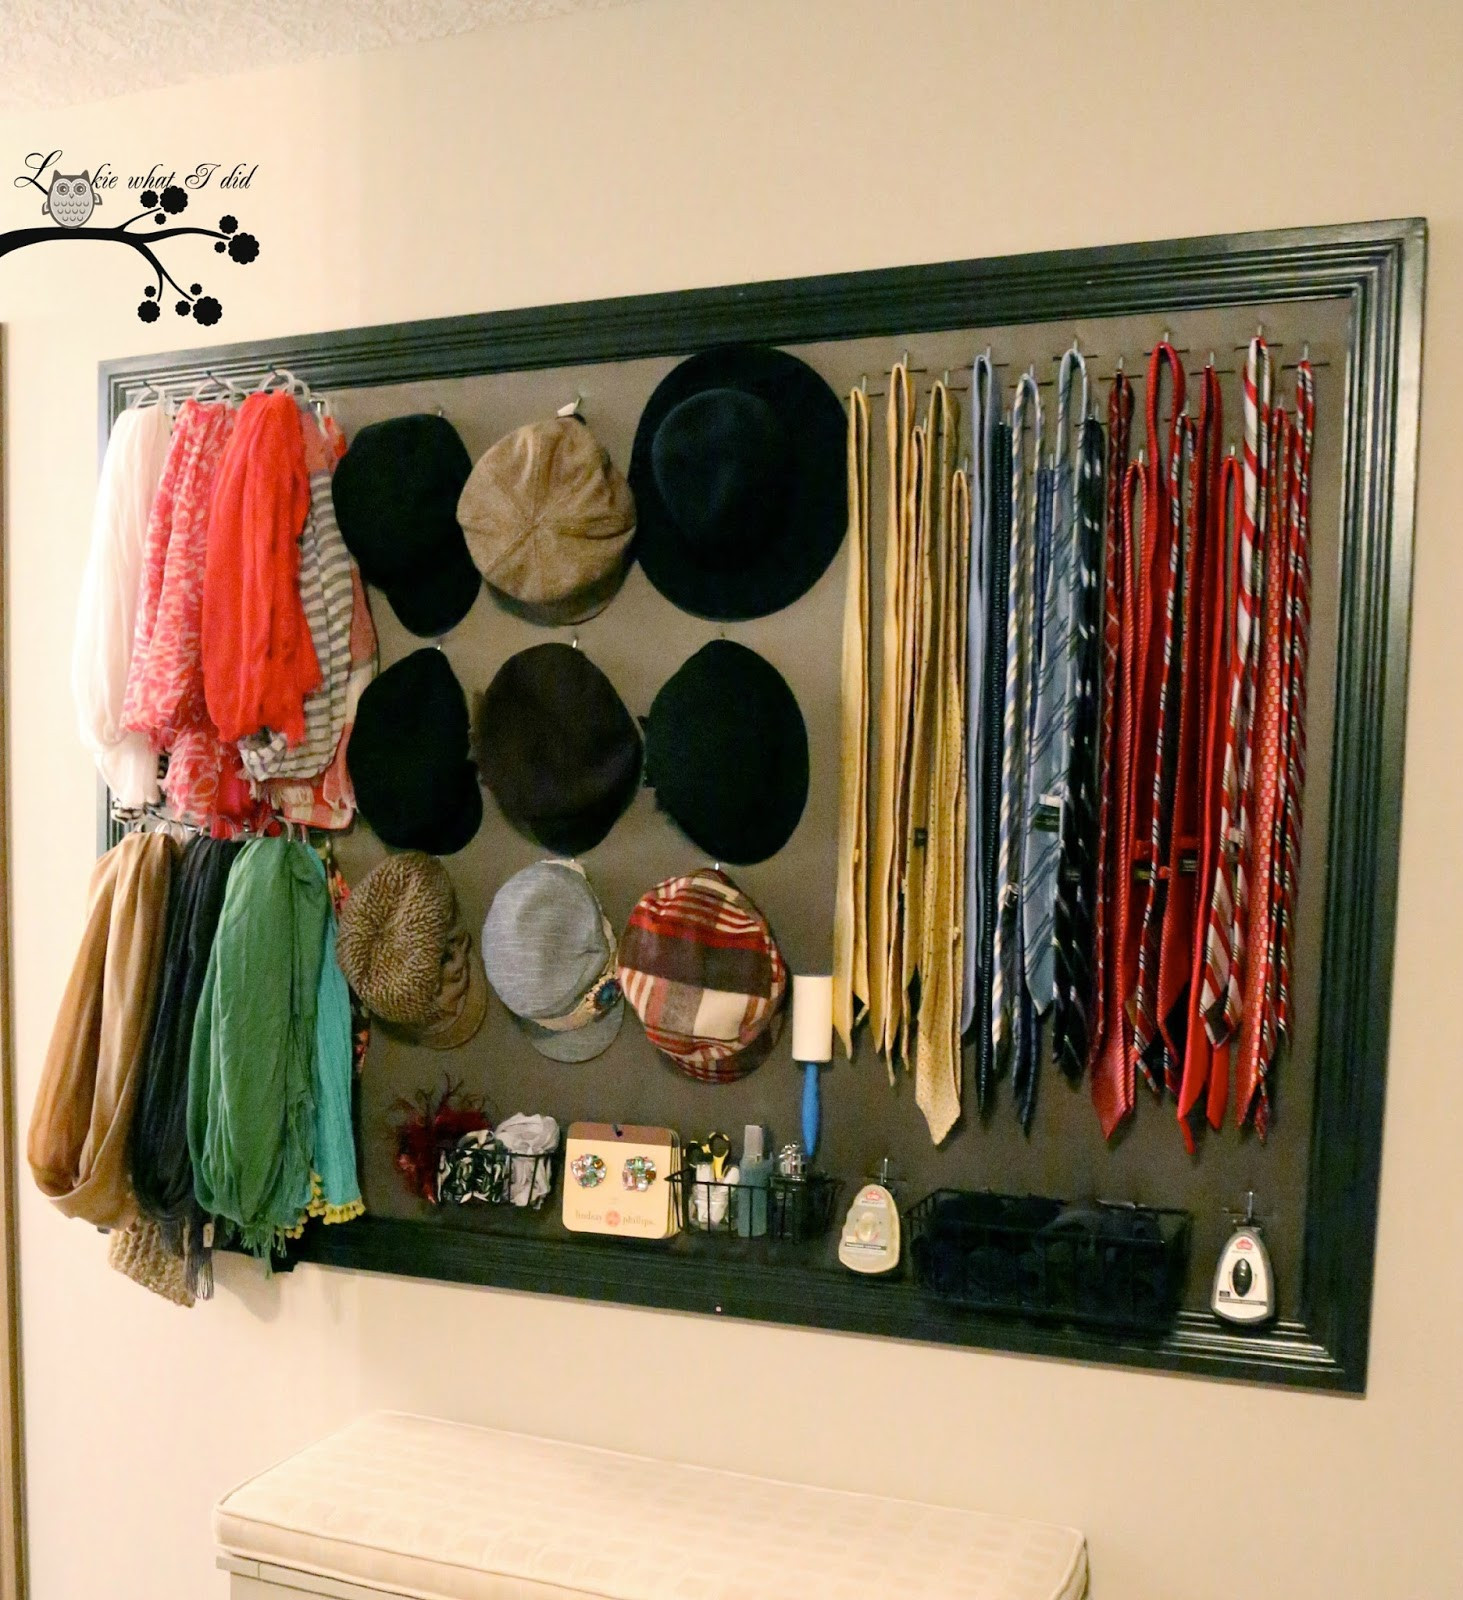 Best ideas about DIY Closet Organizer . Save or Pin Lookie What I Did His and Her Closet Organizer Now.